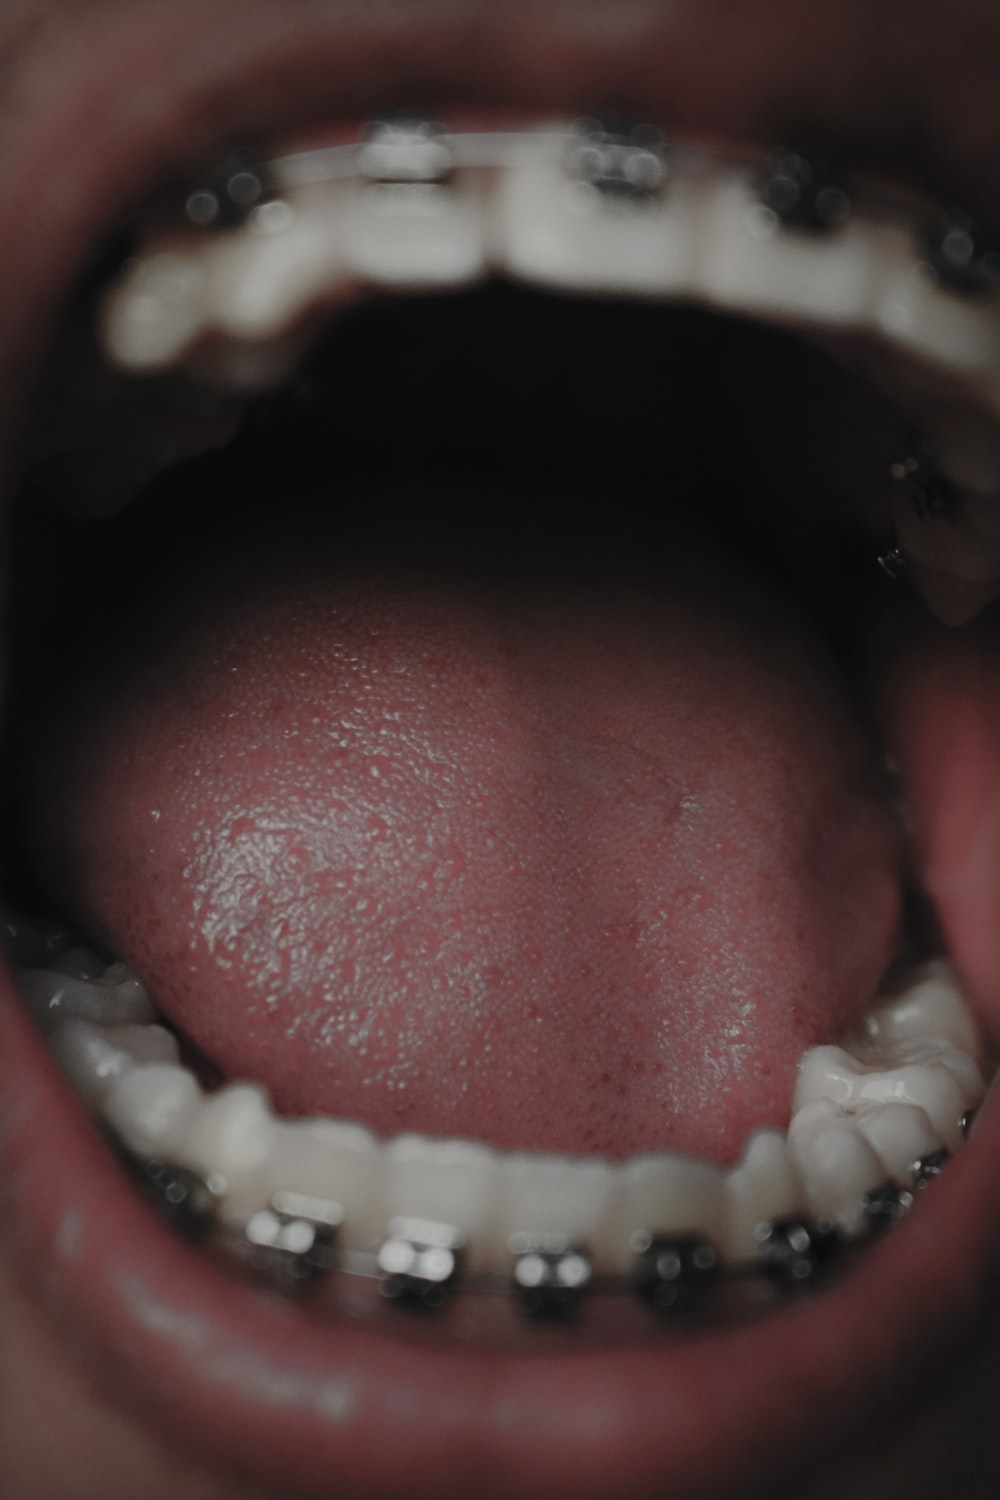 persons mouth open in close up photography